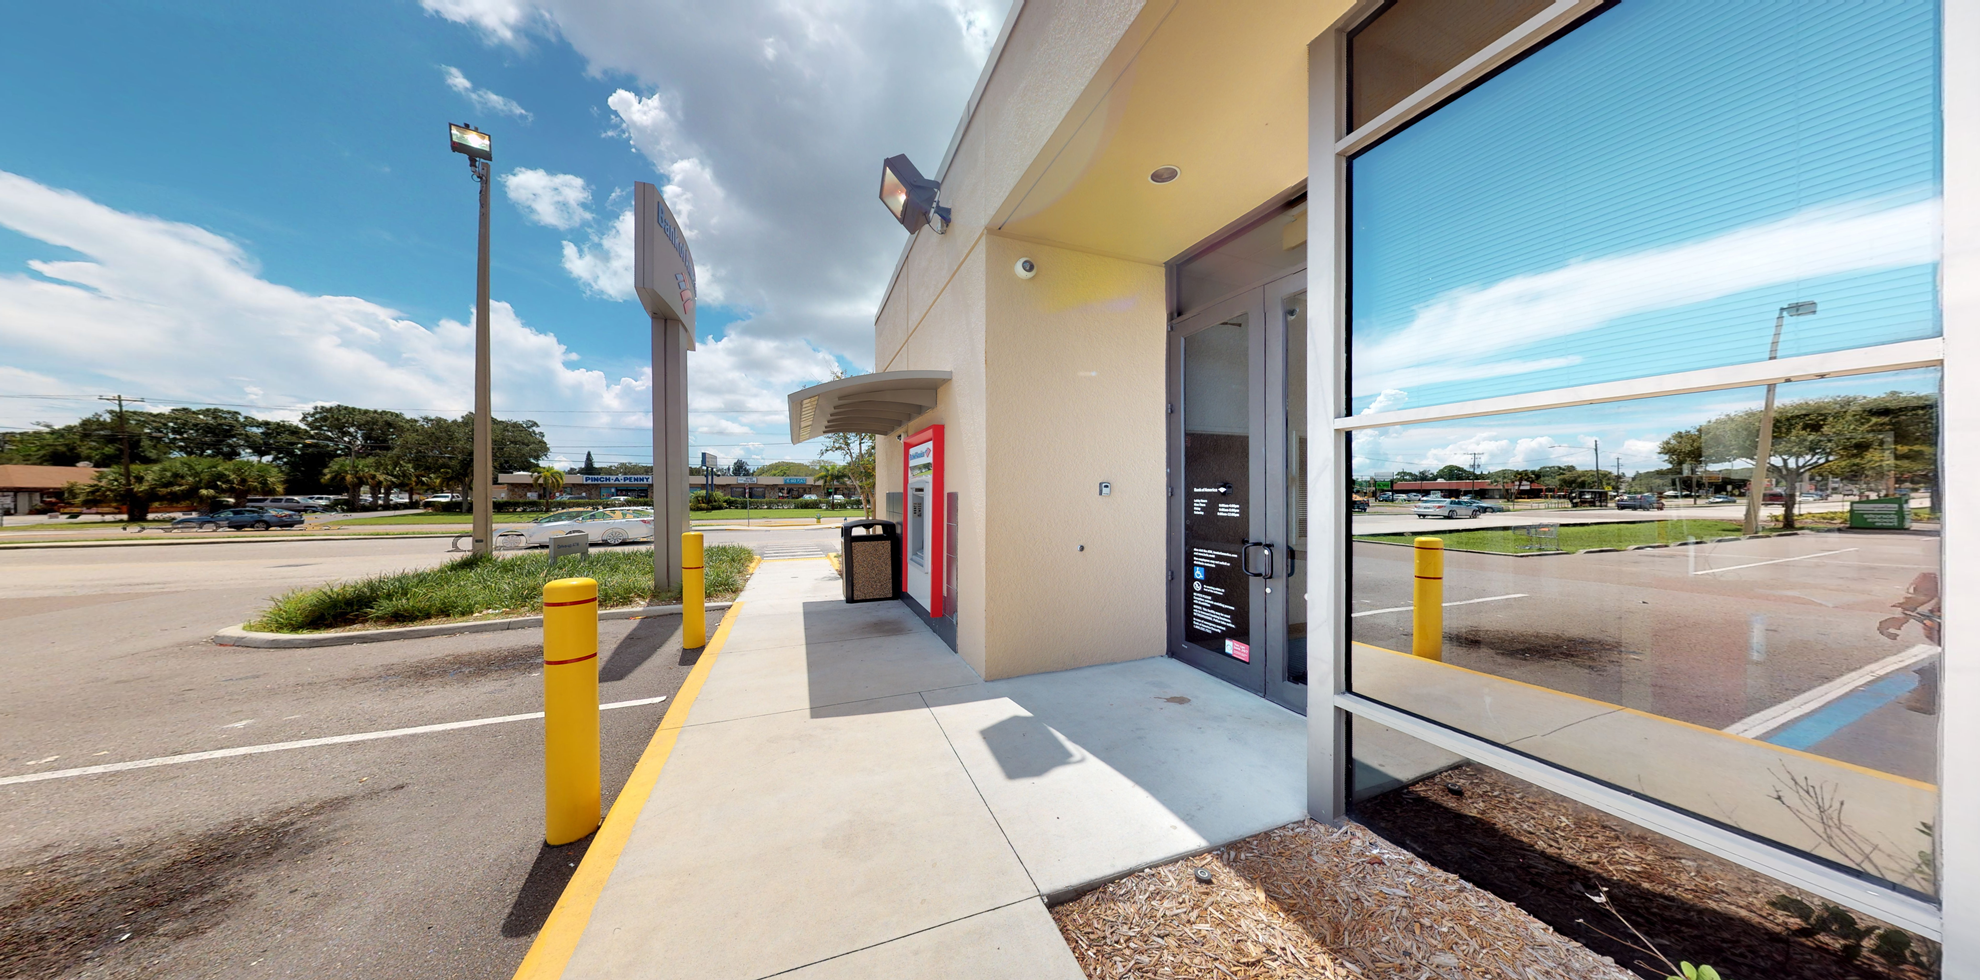 Bank of America financial center with drive-thru ATM and teller   1135 62nd Ave N, Saint Petersburg, FL 33702